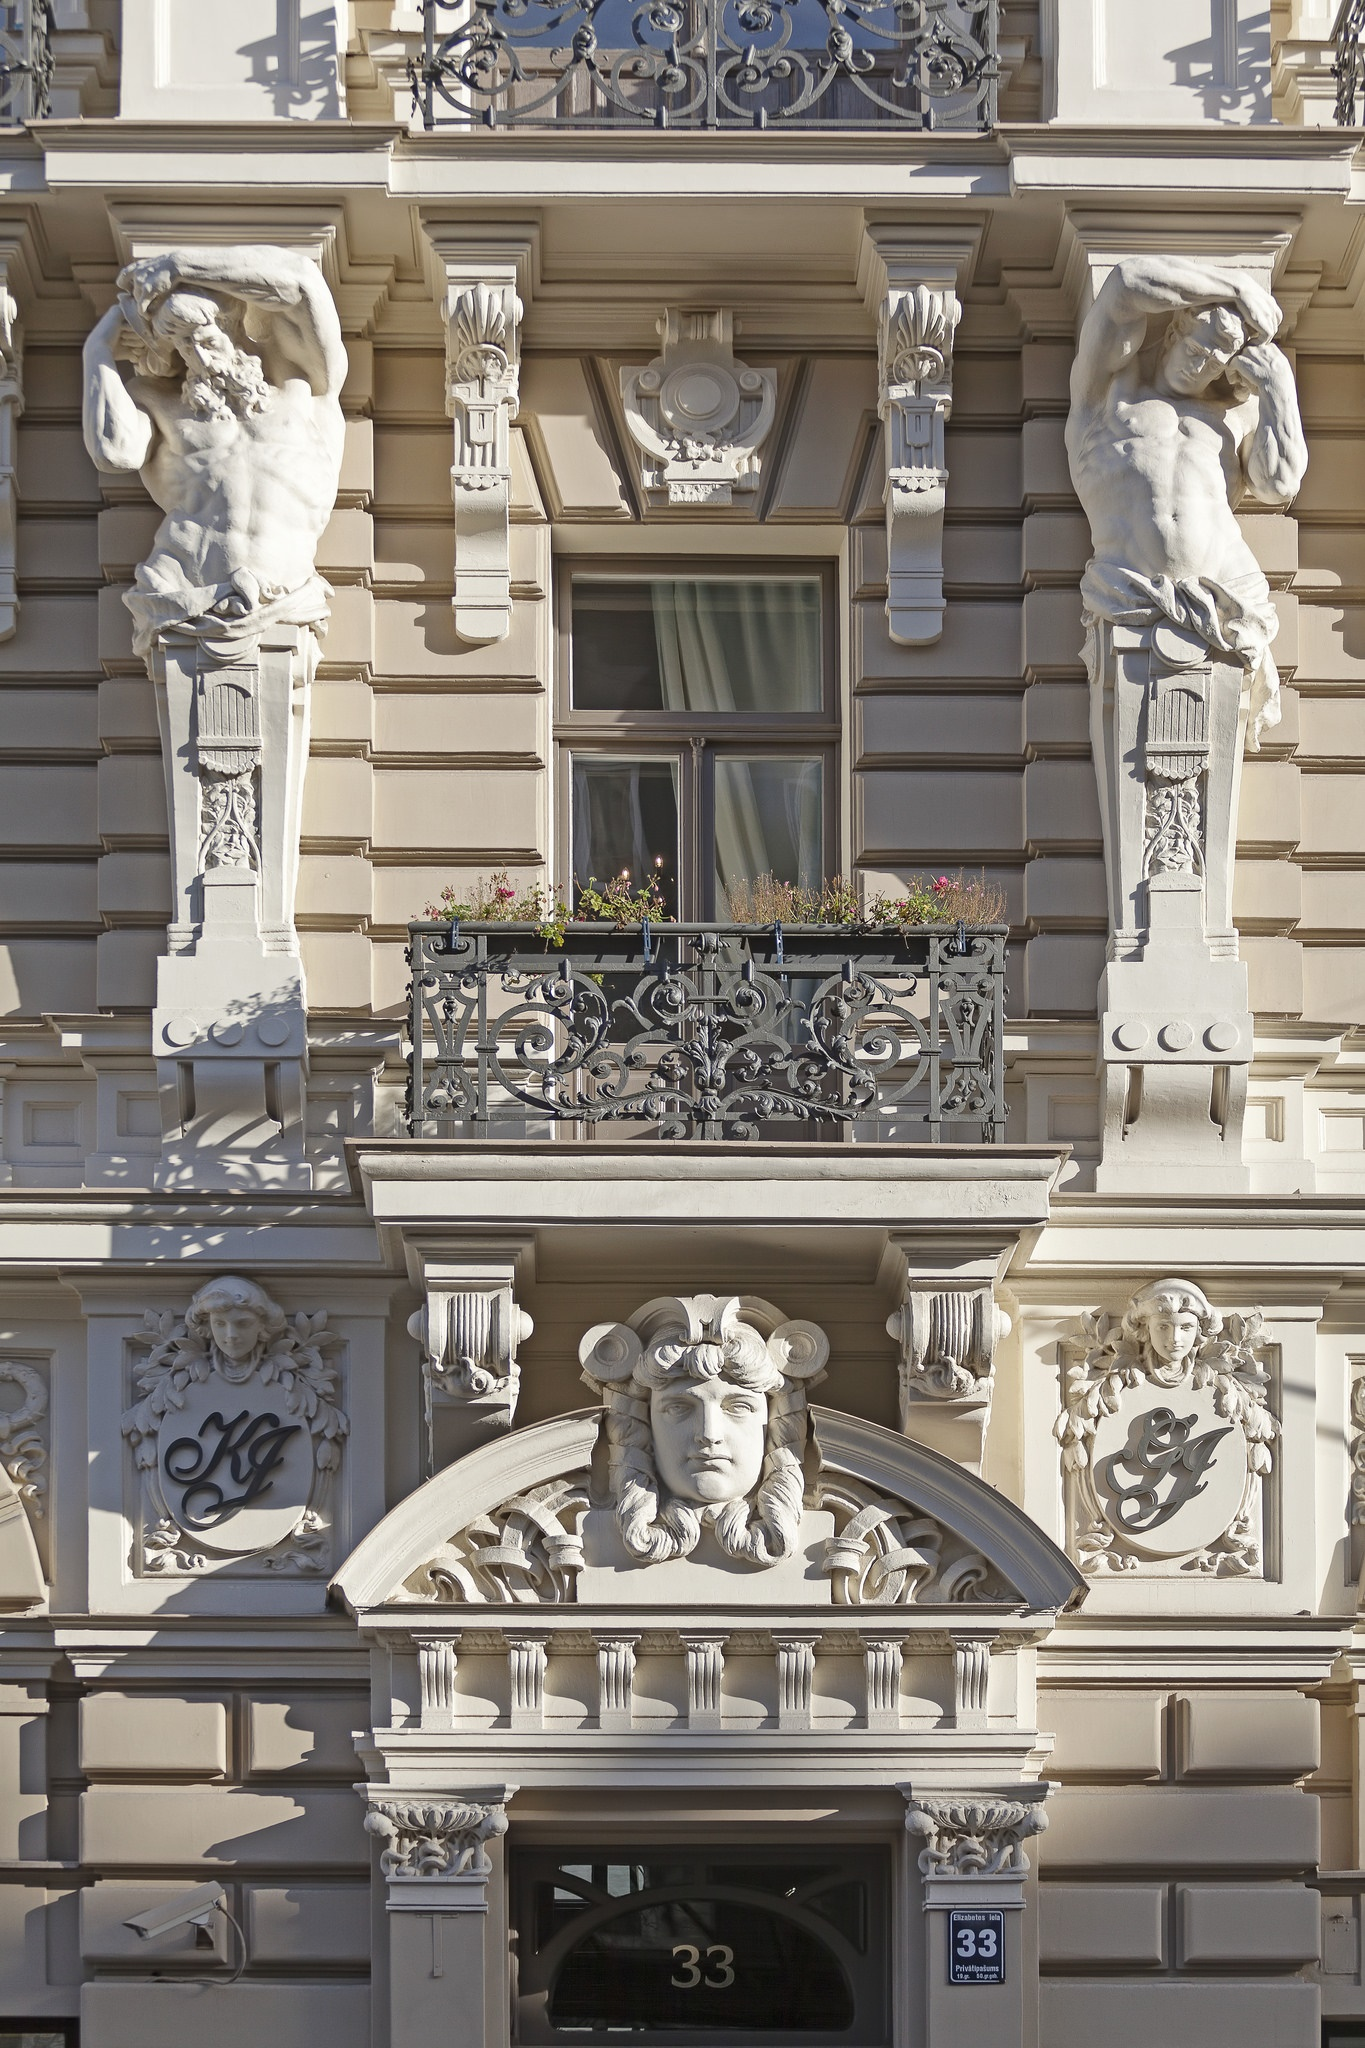 Art Nouveau in Riga, Investment and Development Agency of Latvia, author Reinis Hofmanis